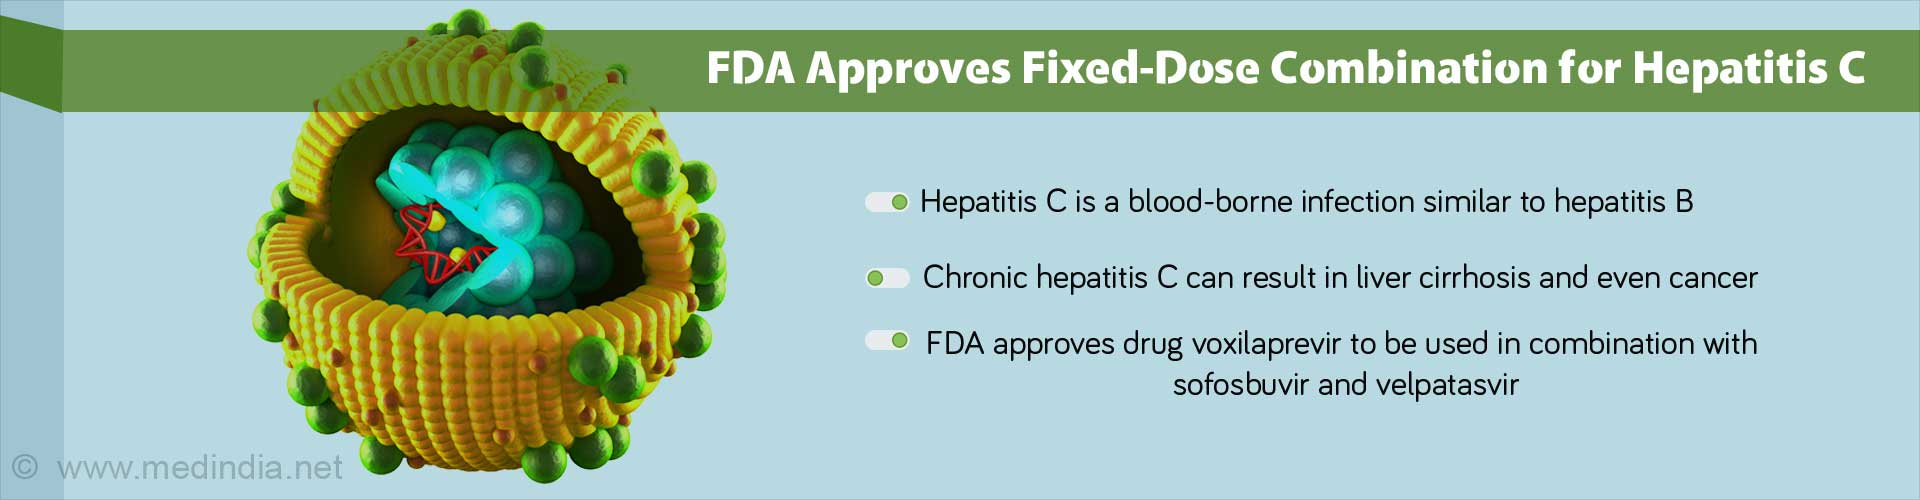 FDA Approved Drug for Hepatitis C: New Fixed-Dose Combination - Sofosbuvir, Velpatasvir and Voxilaprevir